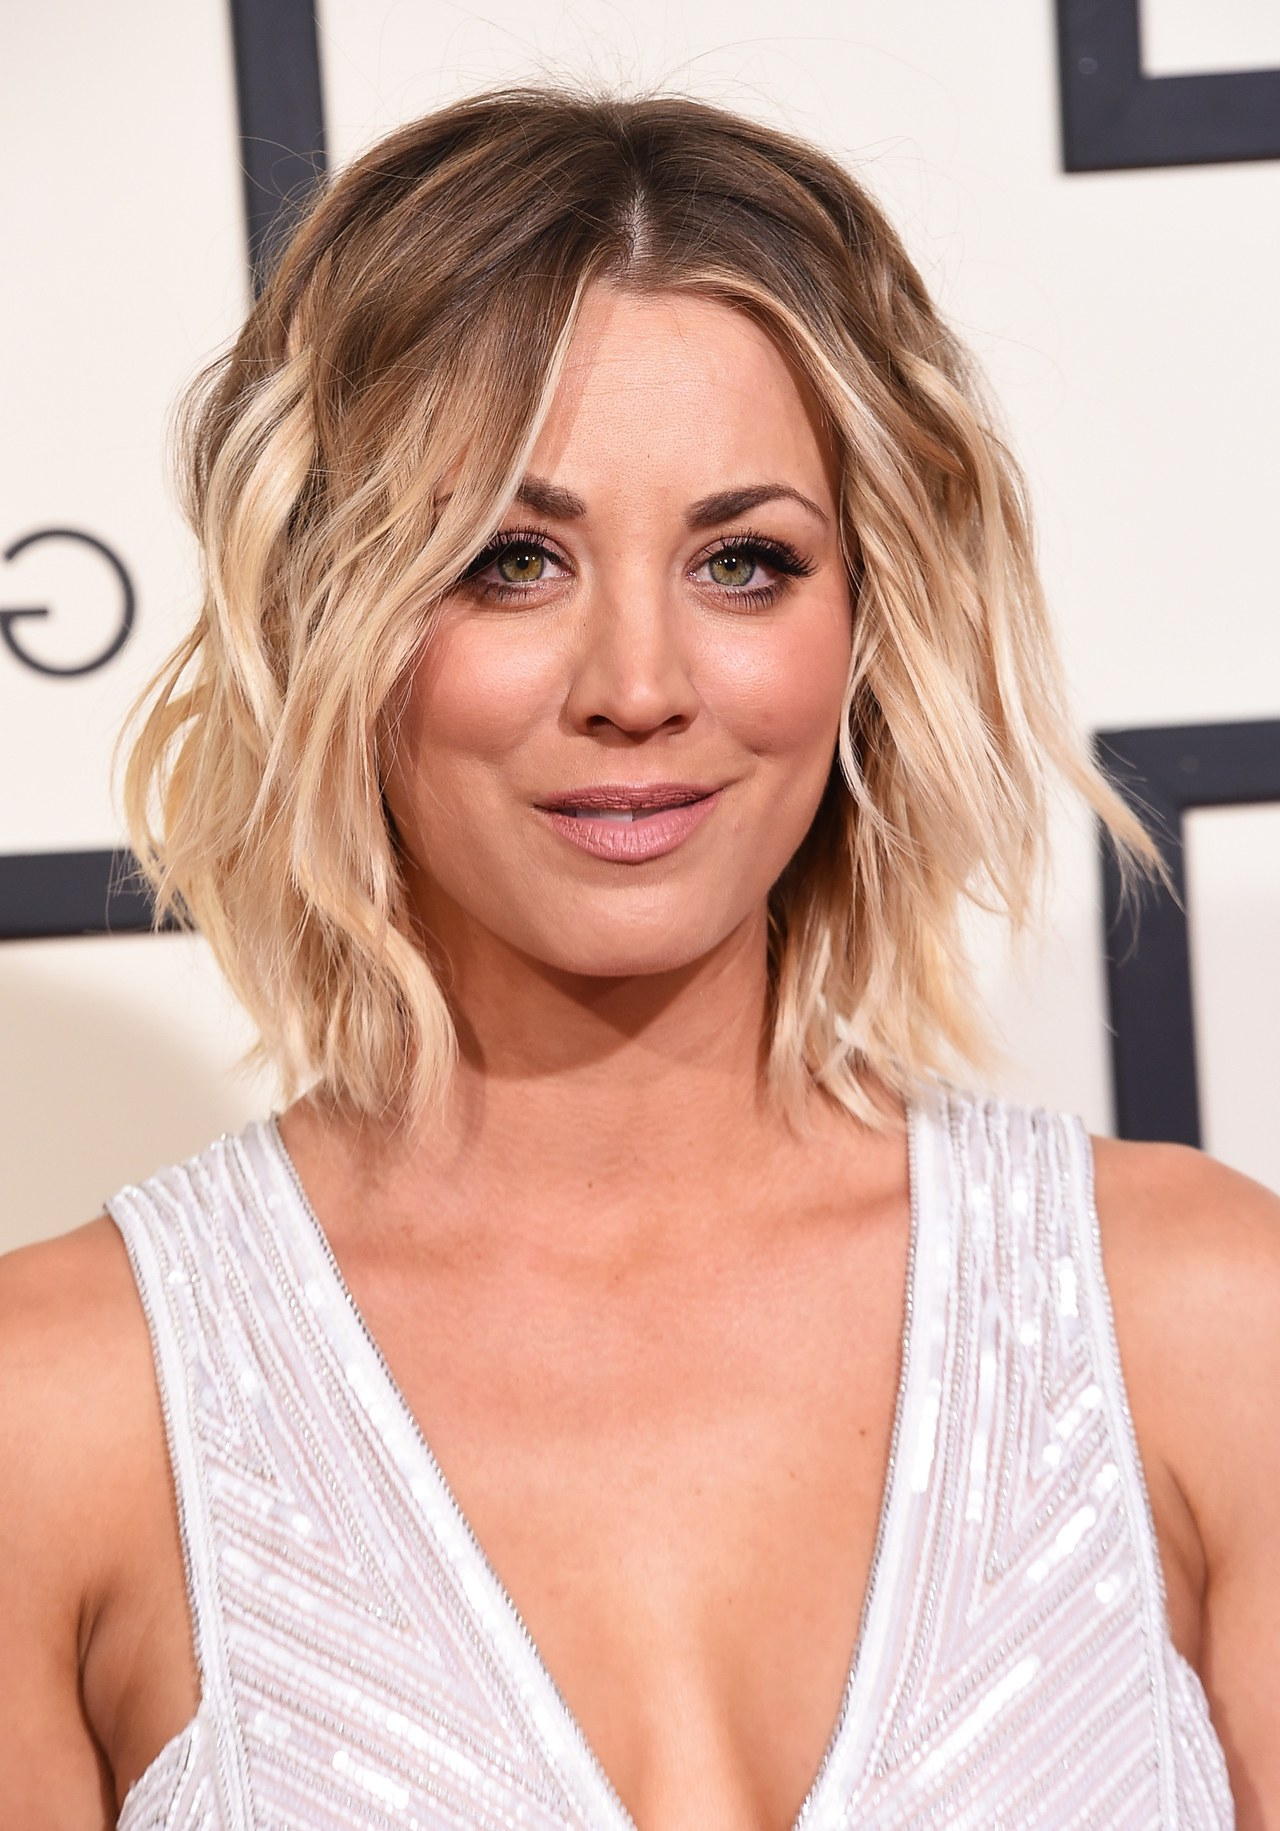 Kaley Cuoco Hair Evolution: See How She Grew Out Her Pixie | Glamour In Kaley Cuoco New Short Haircuts (View 2 of 25)